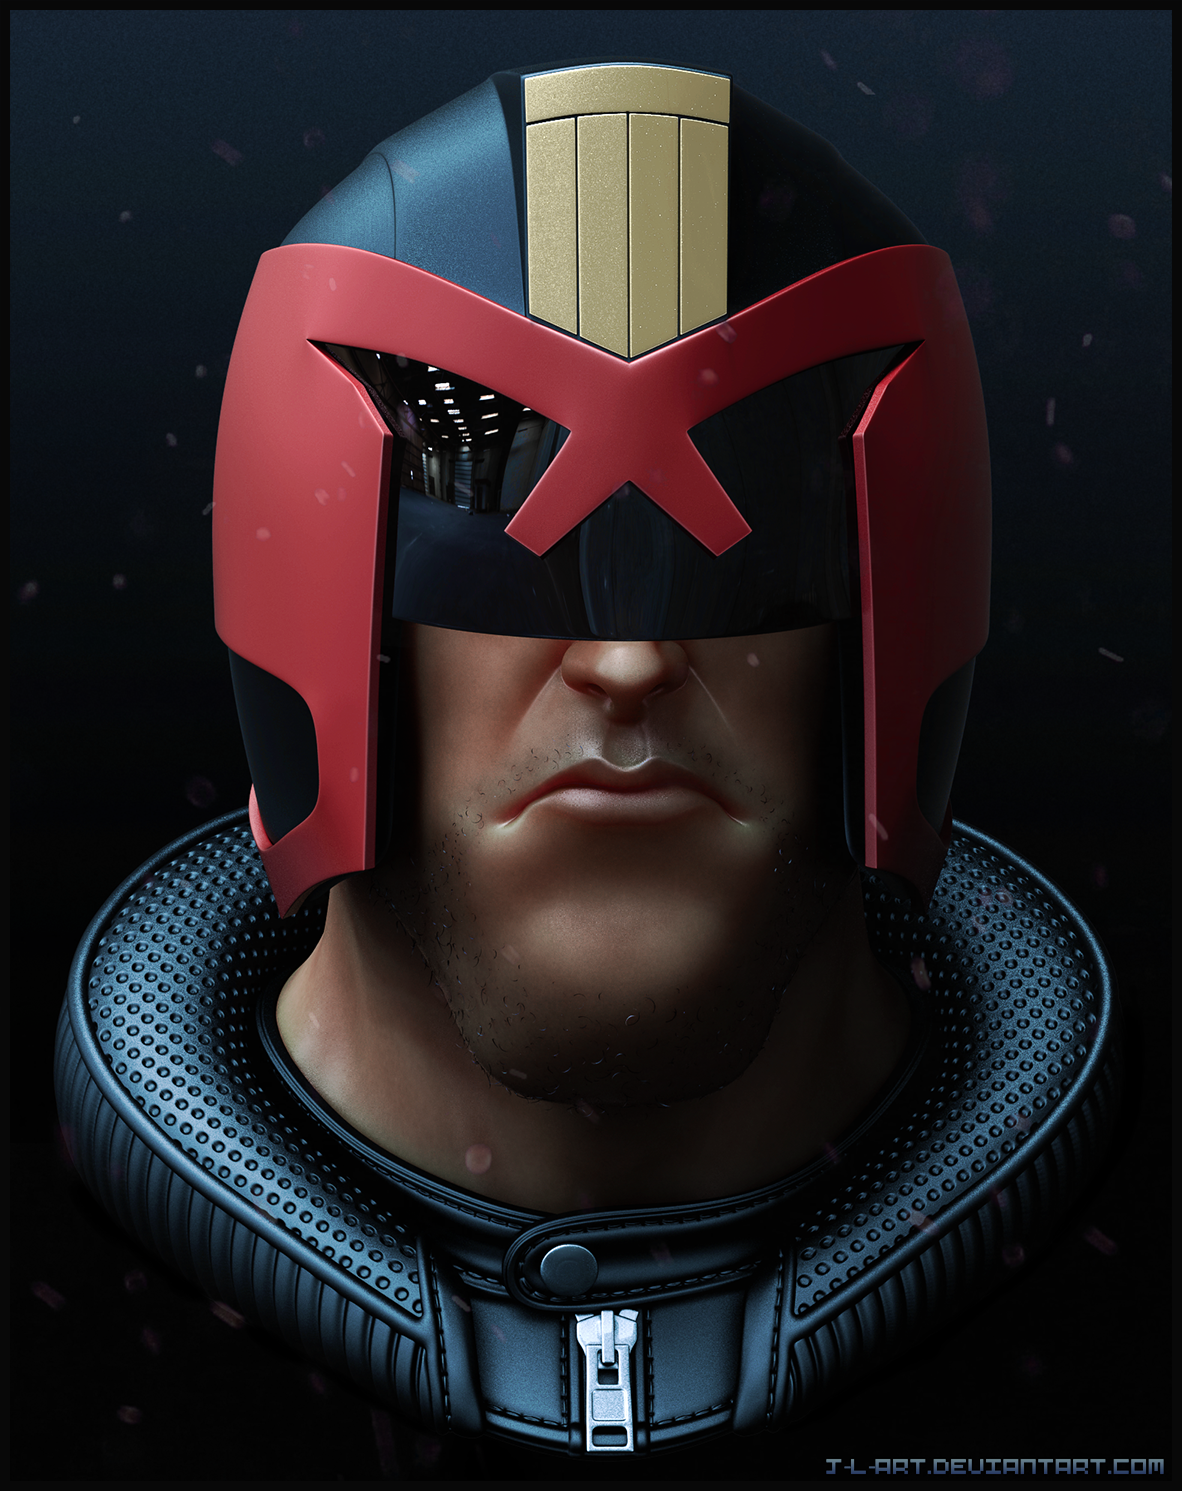 judge__jury__and_executioner_by_j_l_art-d78gdfg.png